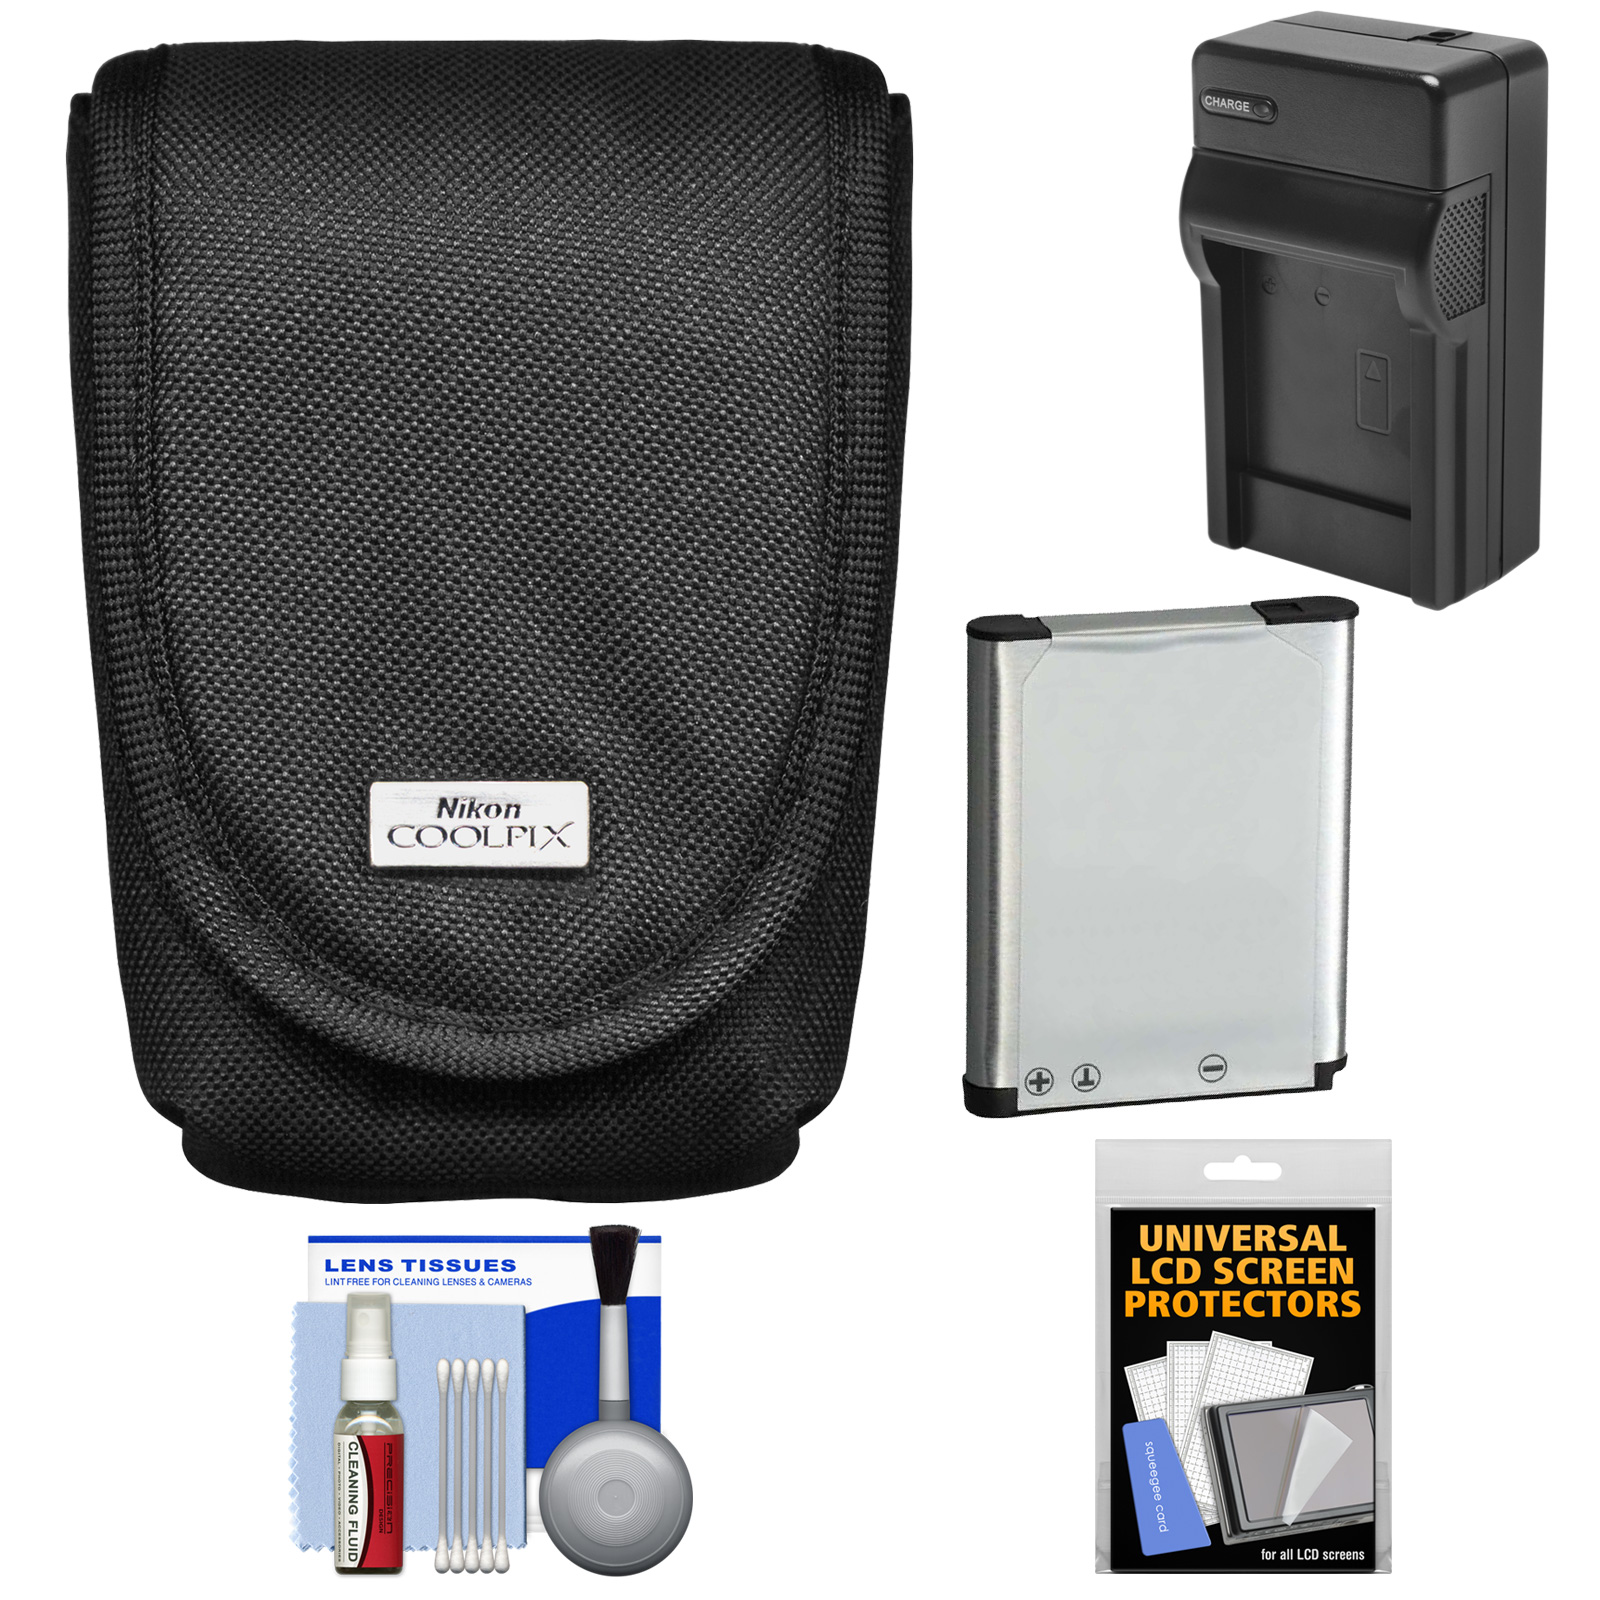 Nikon Coolpix 5879 Digital Camera Case with EN-EL19 Battery + Charger + Accessory Kit for S32, S3500, S4300, S5200, S5300, S6500, S6800